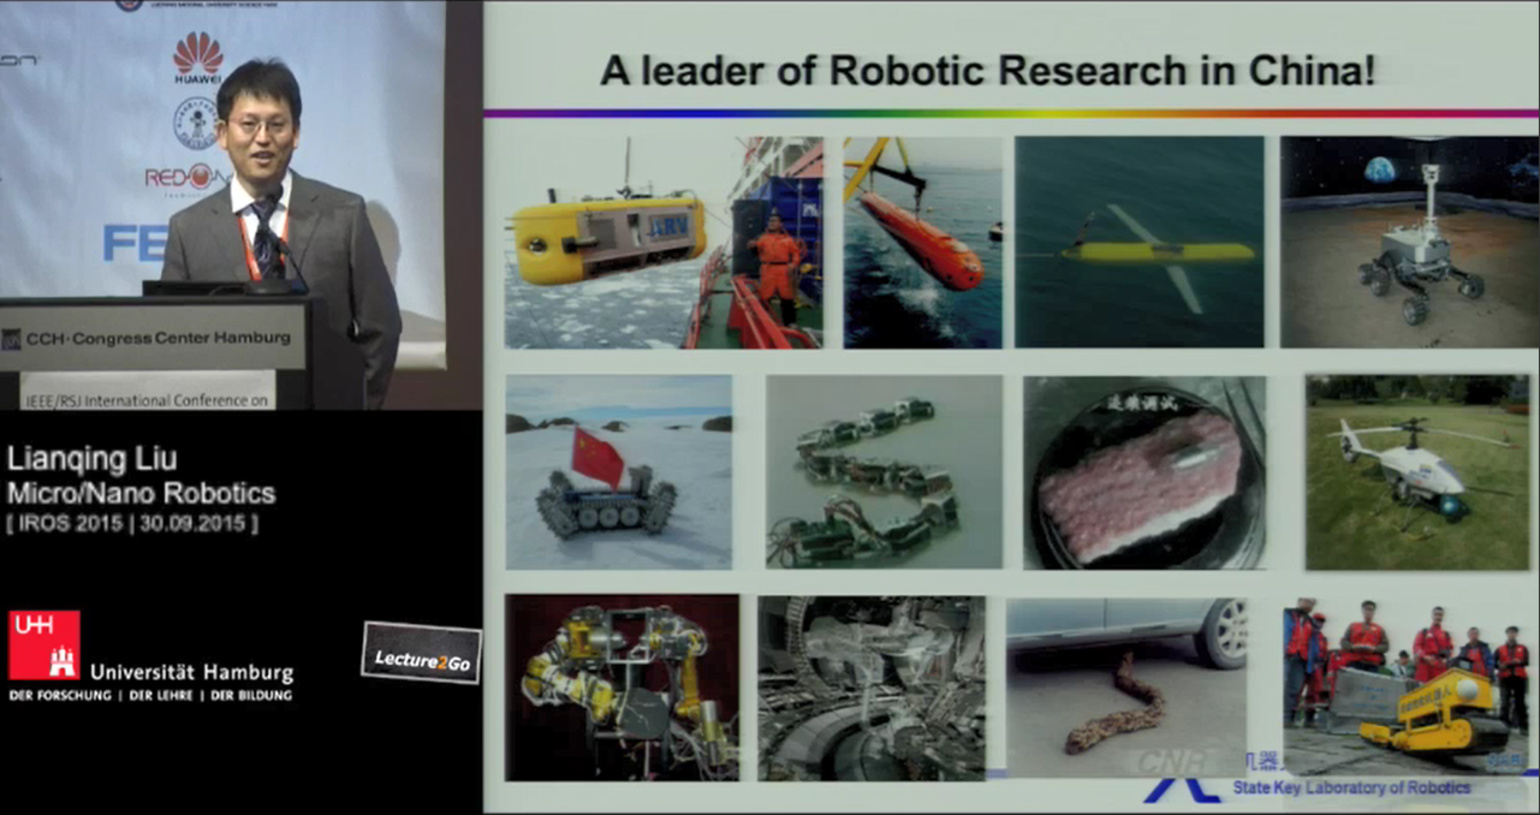 MicroNano Robotics Enabled Technology for Nano Device Assembly and Drug Discovery